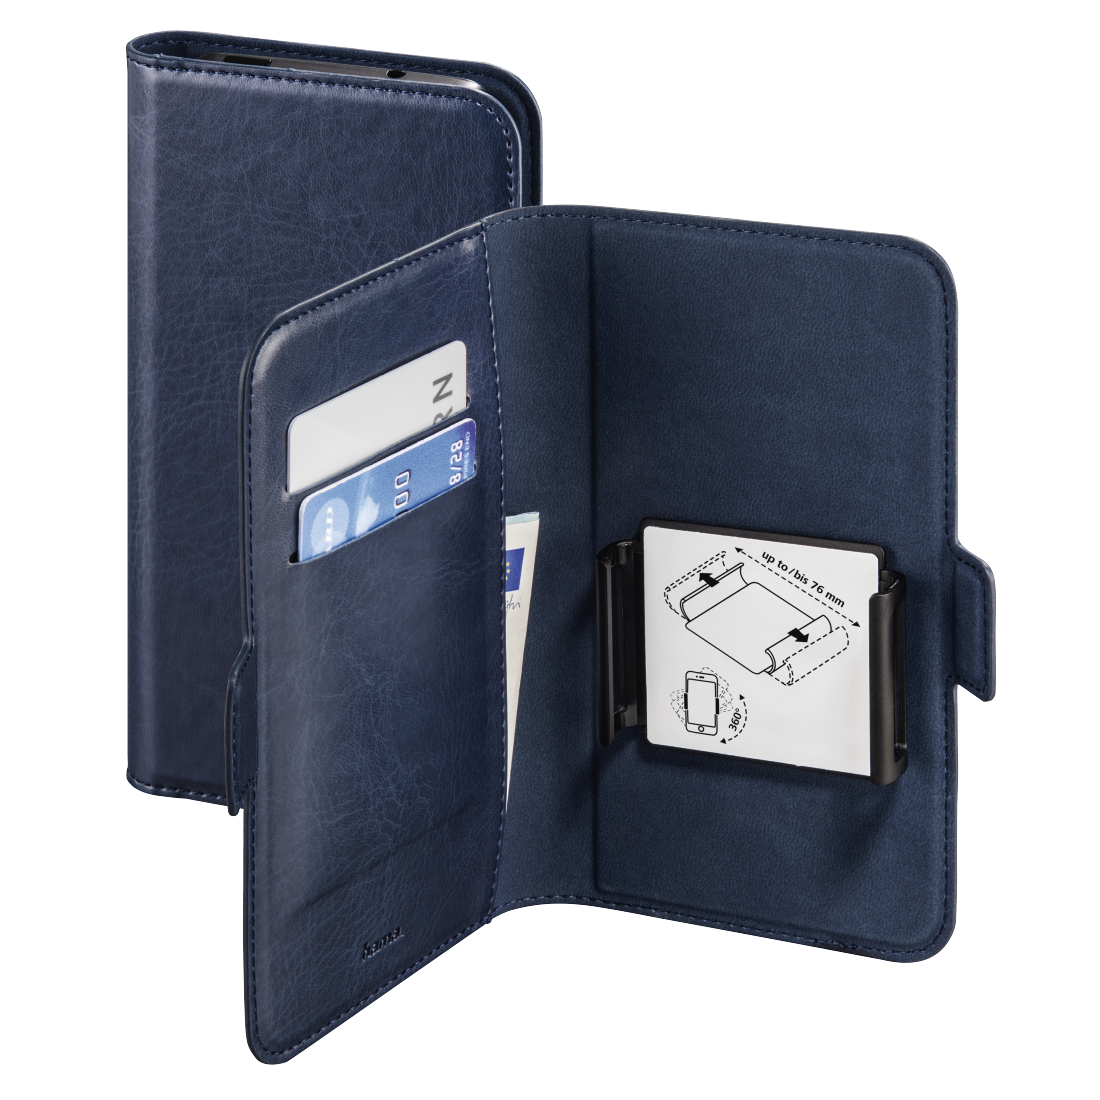 abx High-Res Image - Hama, Smart Move Booklet Case, size L (4.0 - 4.5), blue